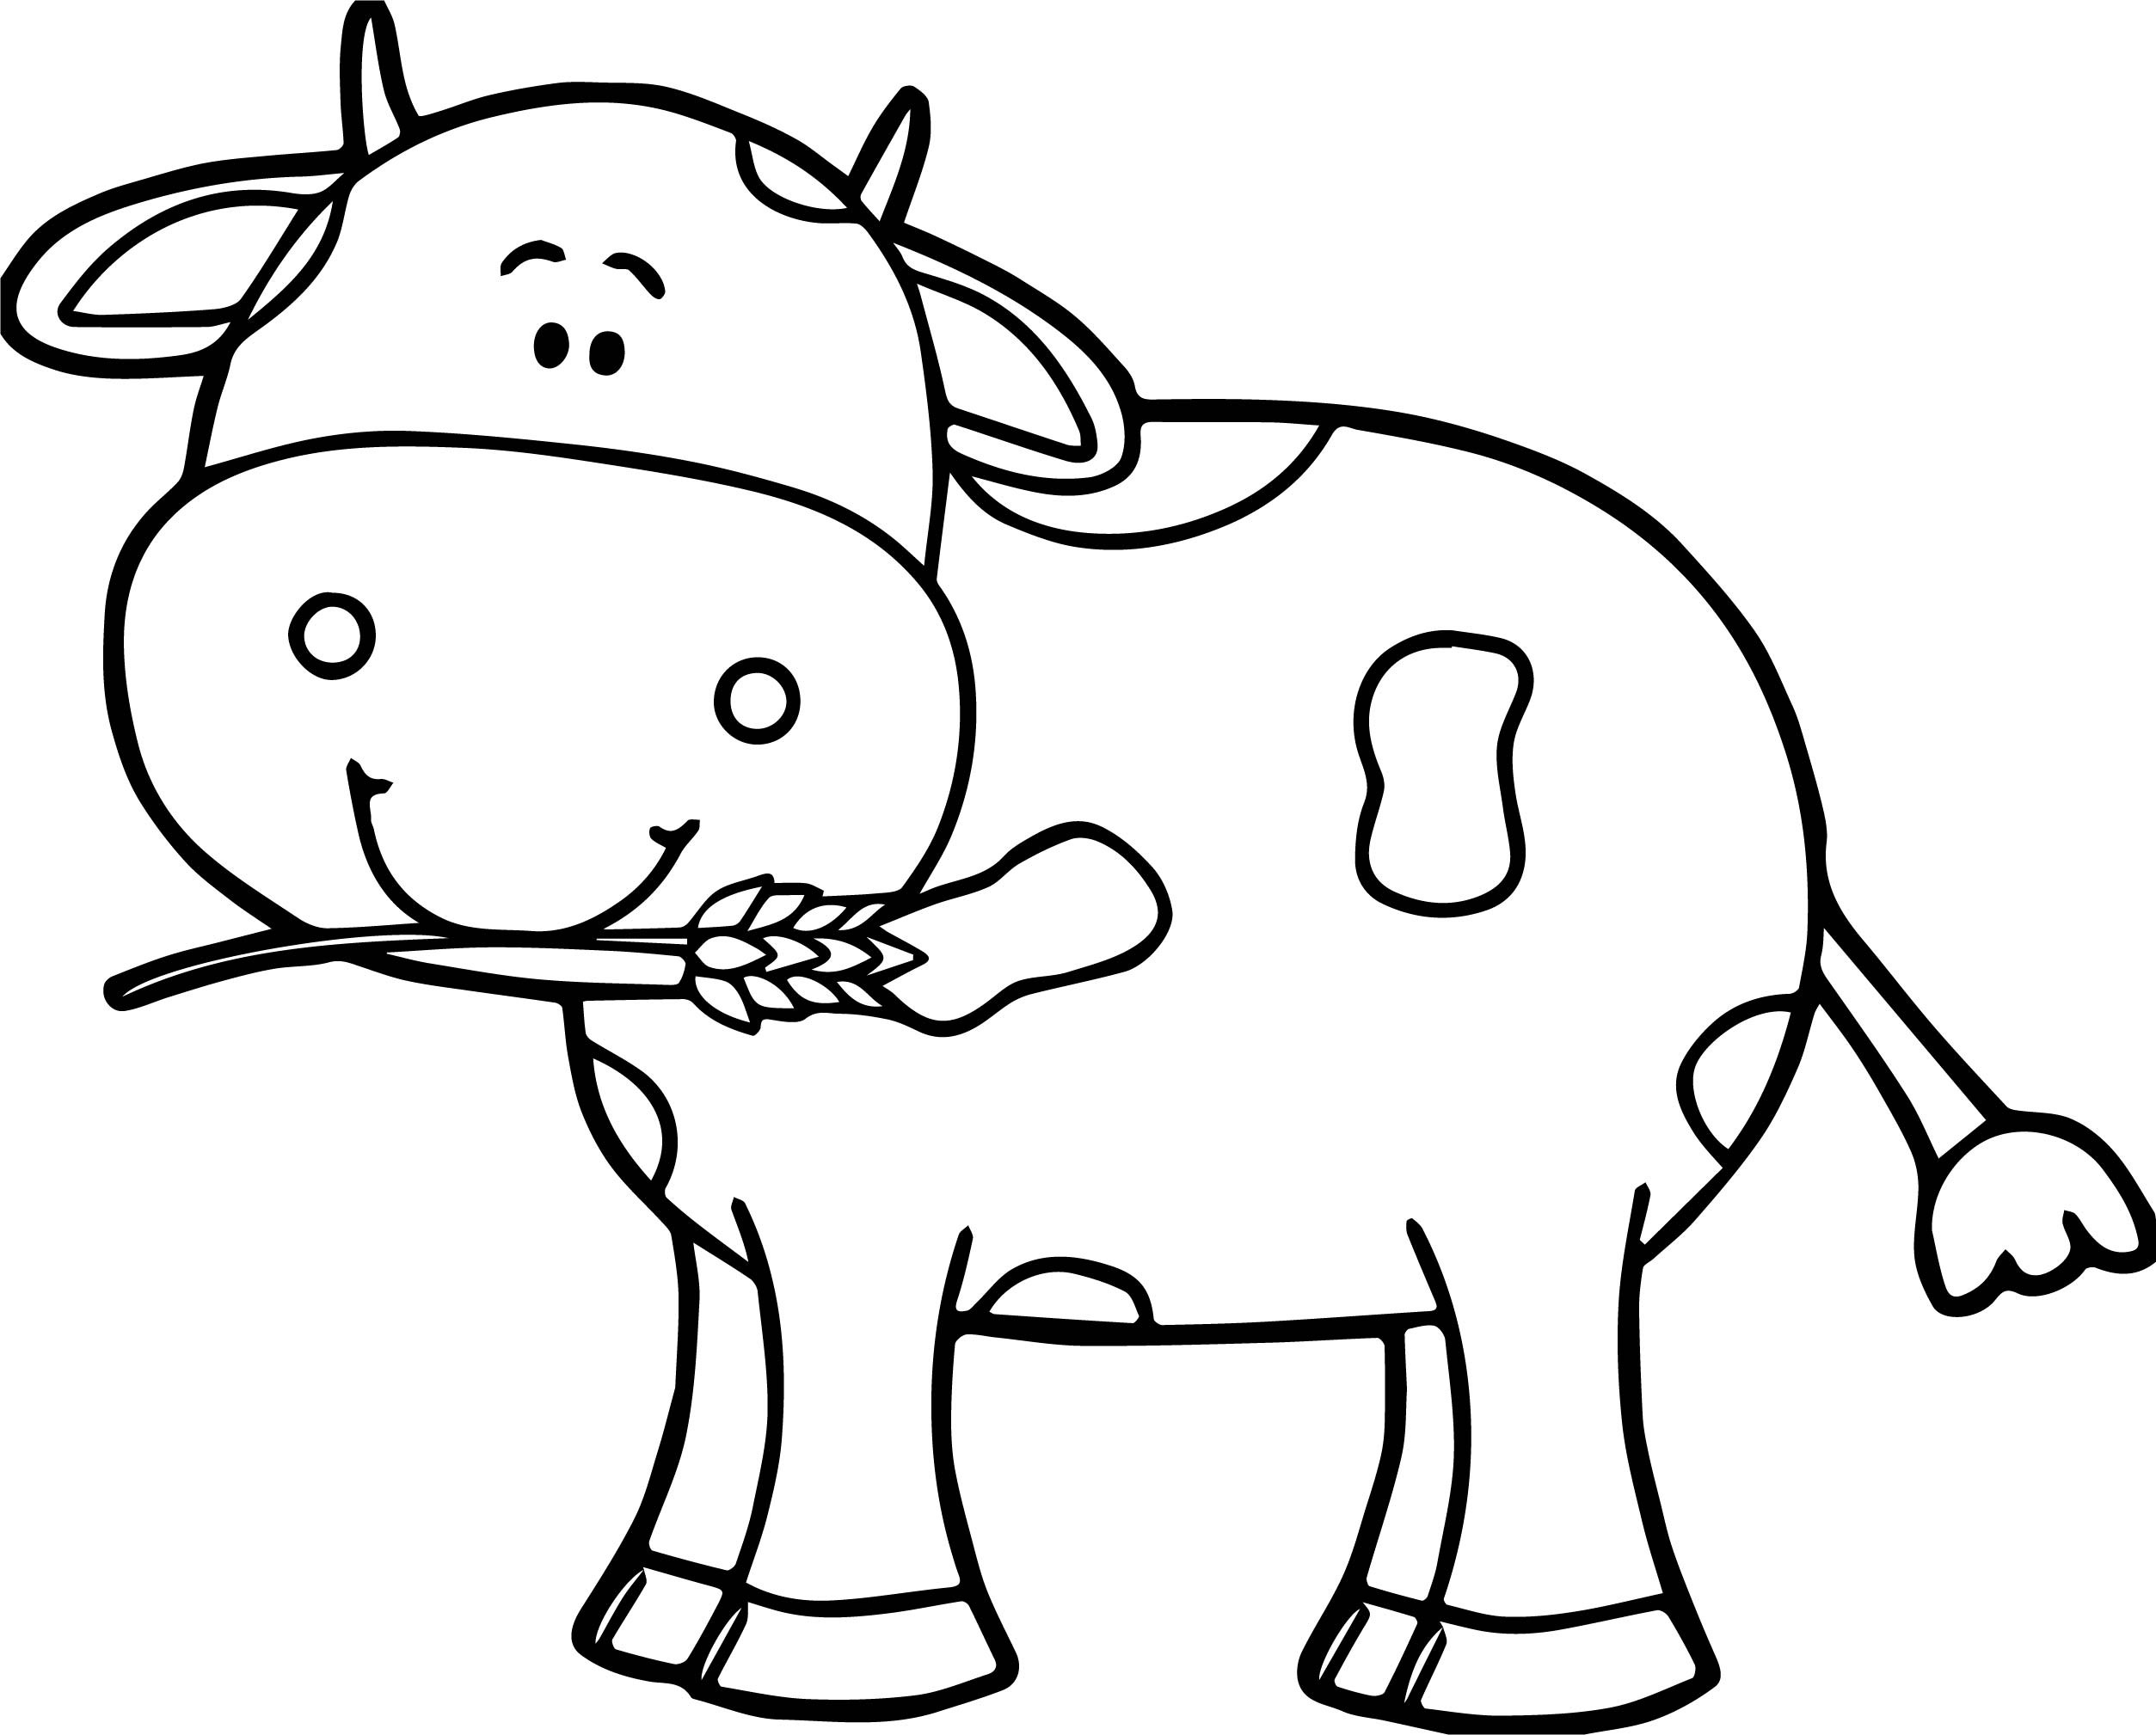 2507x2018 Fresh Cows Coloring Pages Collection Printable Coloring Sheet